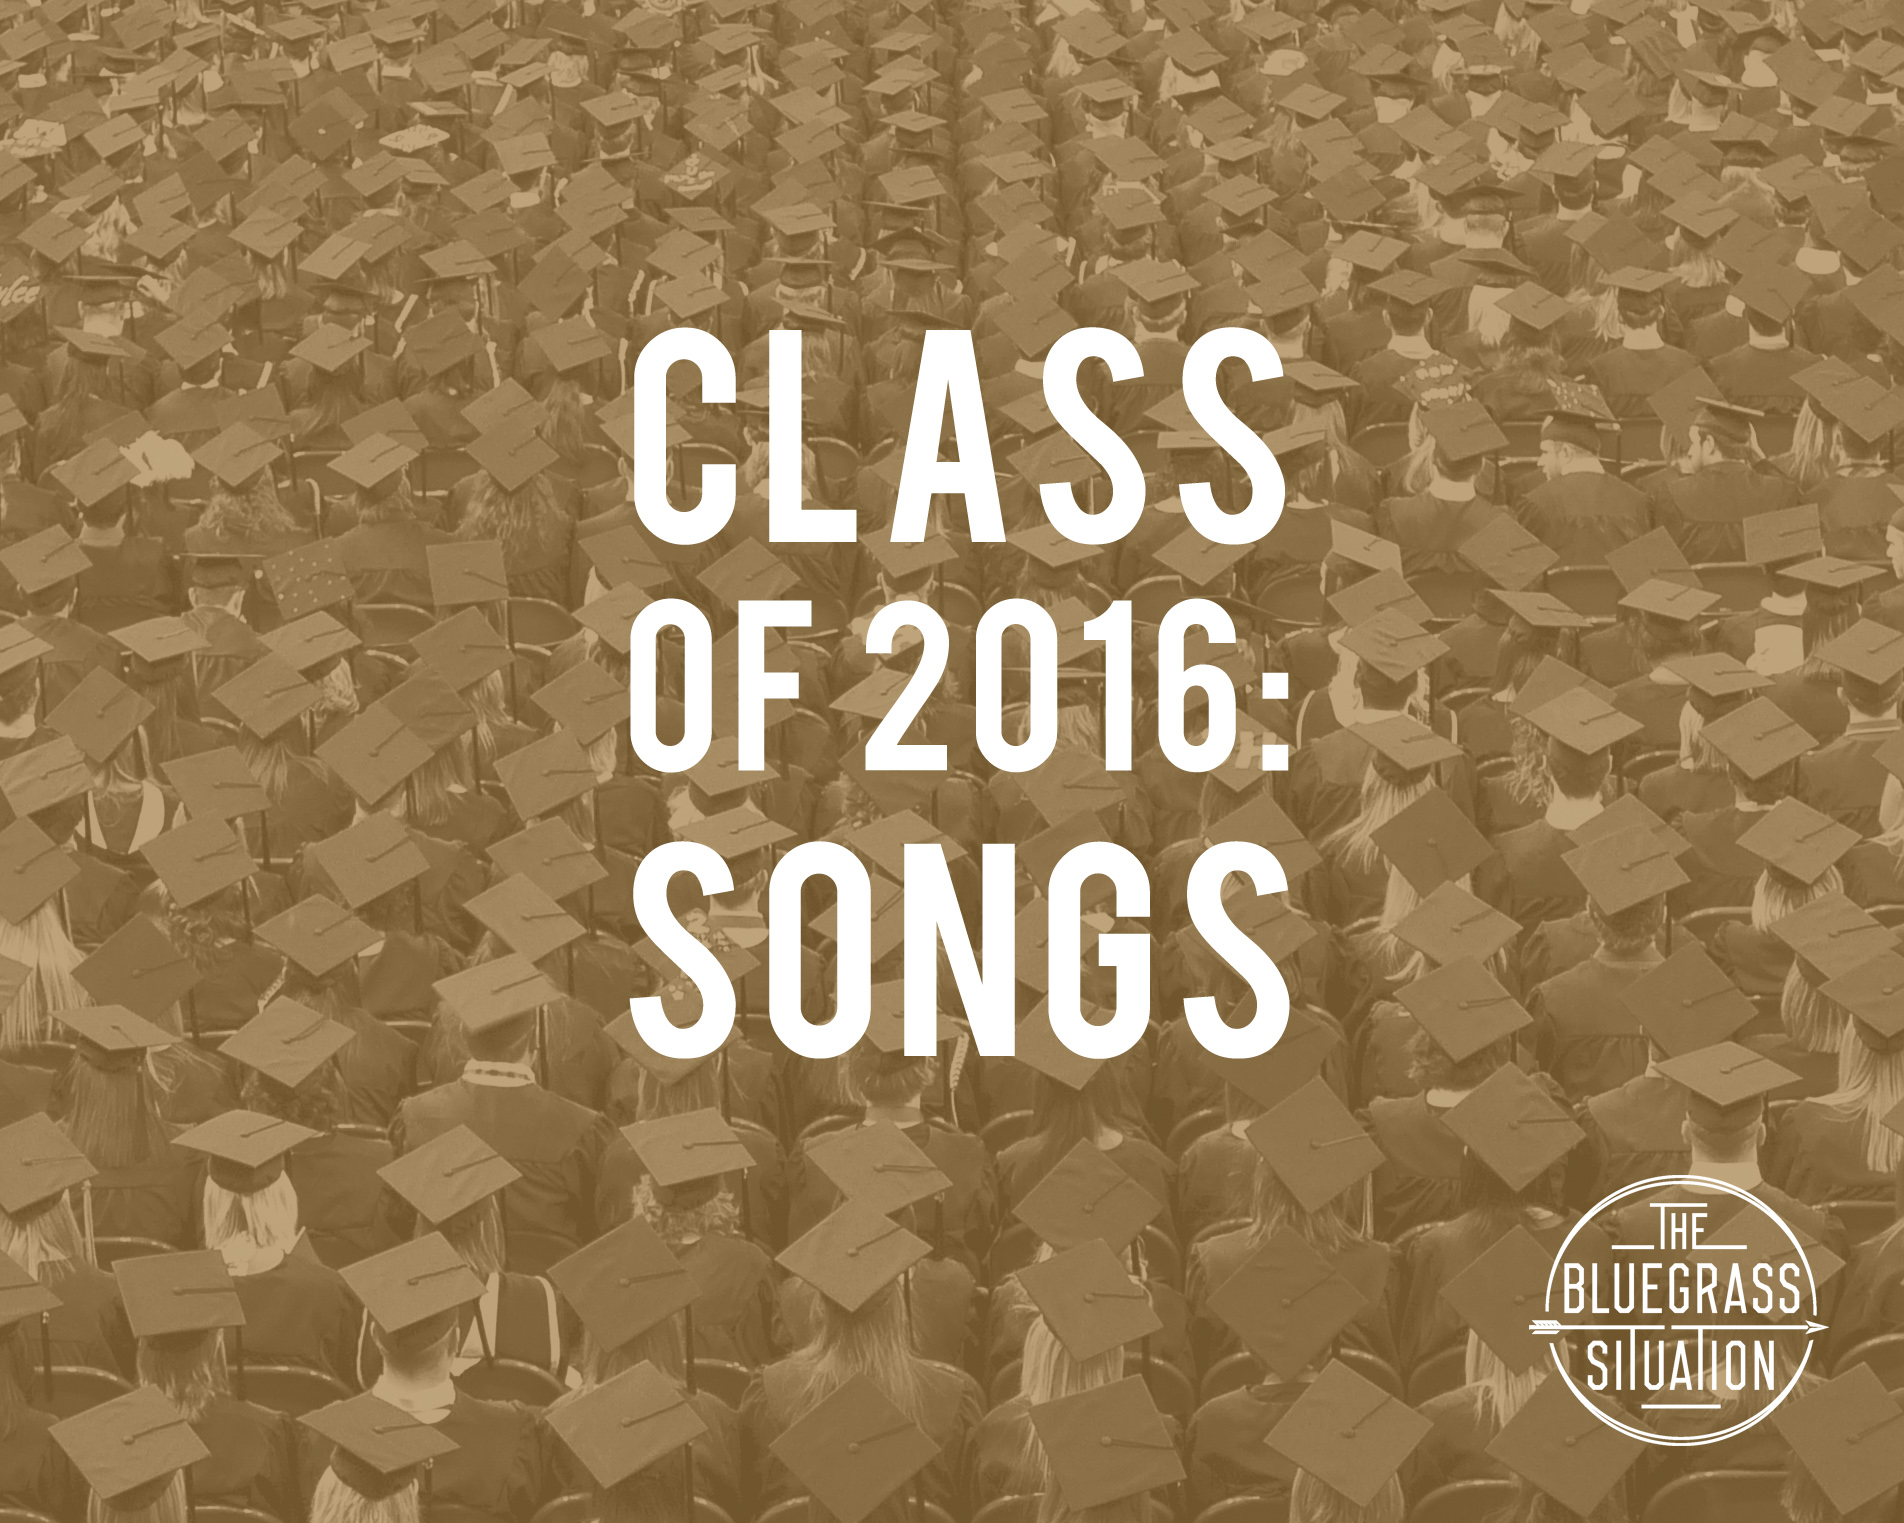 BGS Class of 2016: Songs